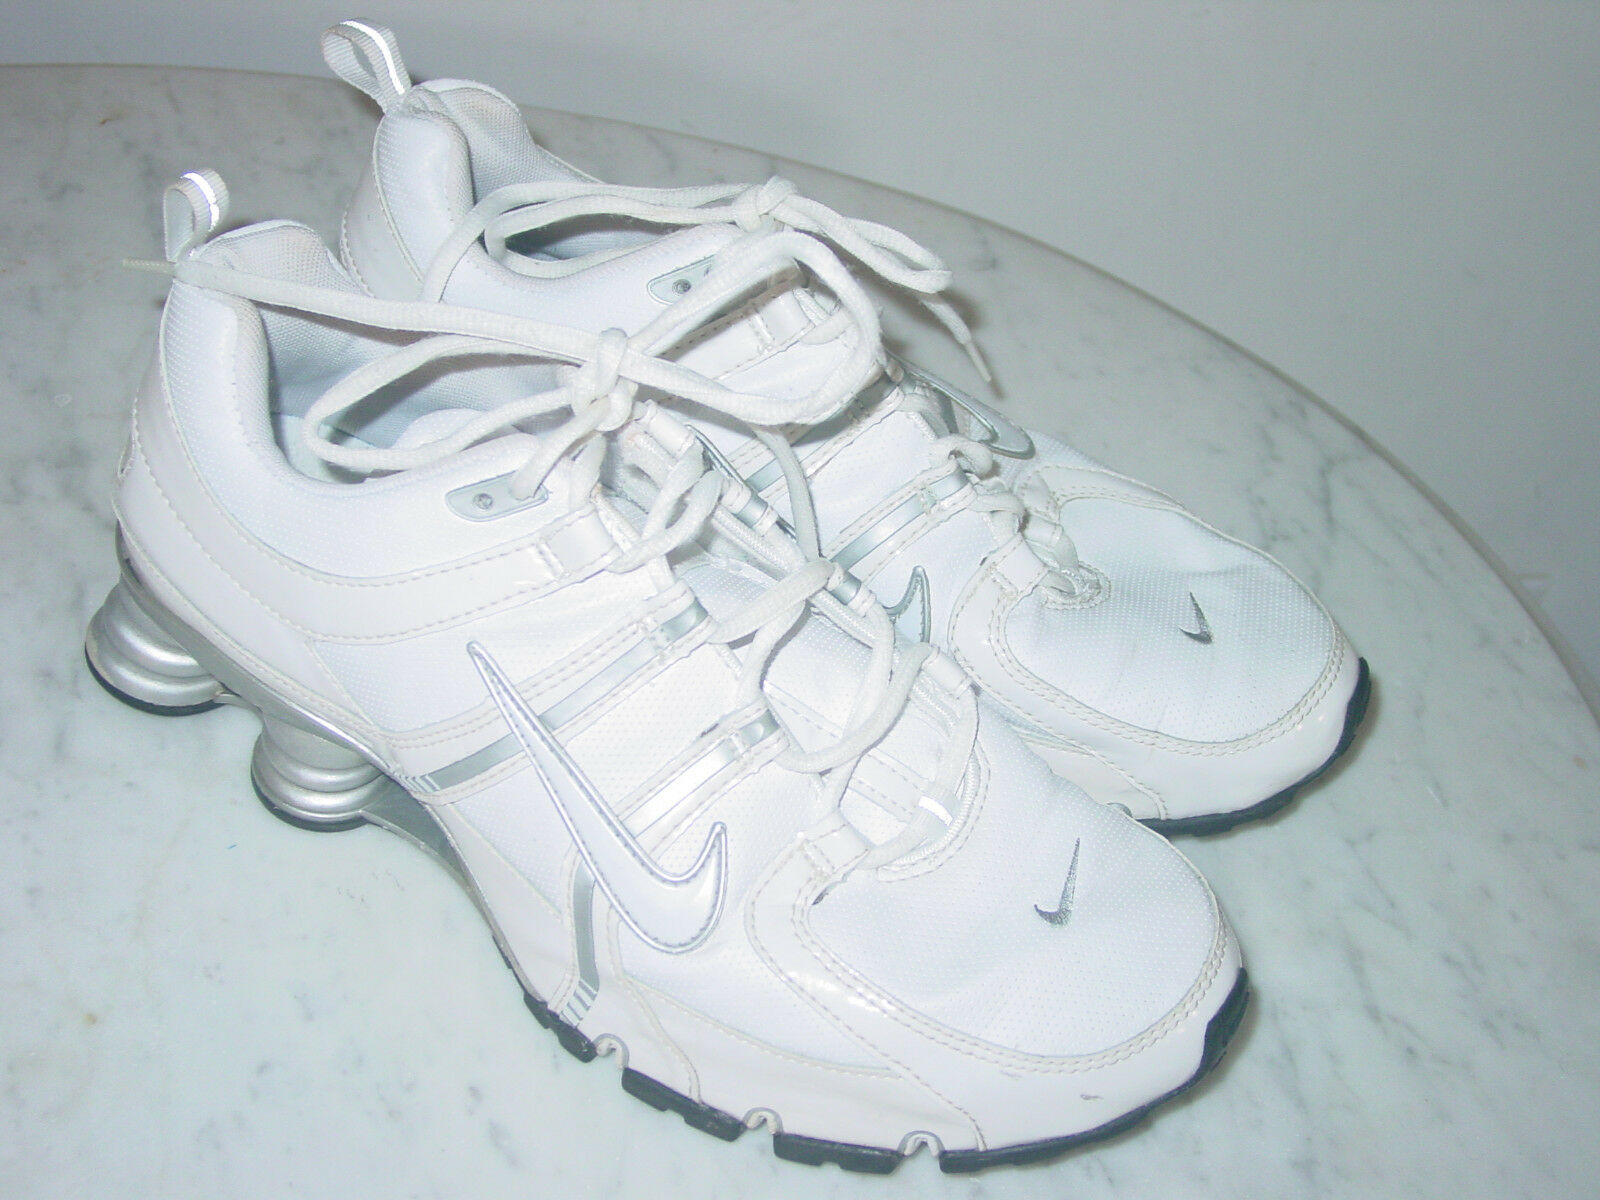 b58657f5f90a1 2007 Mens Nike Shox NZ SL White/Metallic Silver Running Shoes! Size 9  $160.00